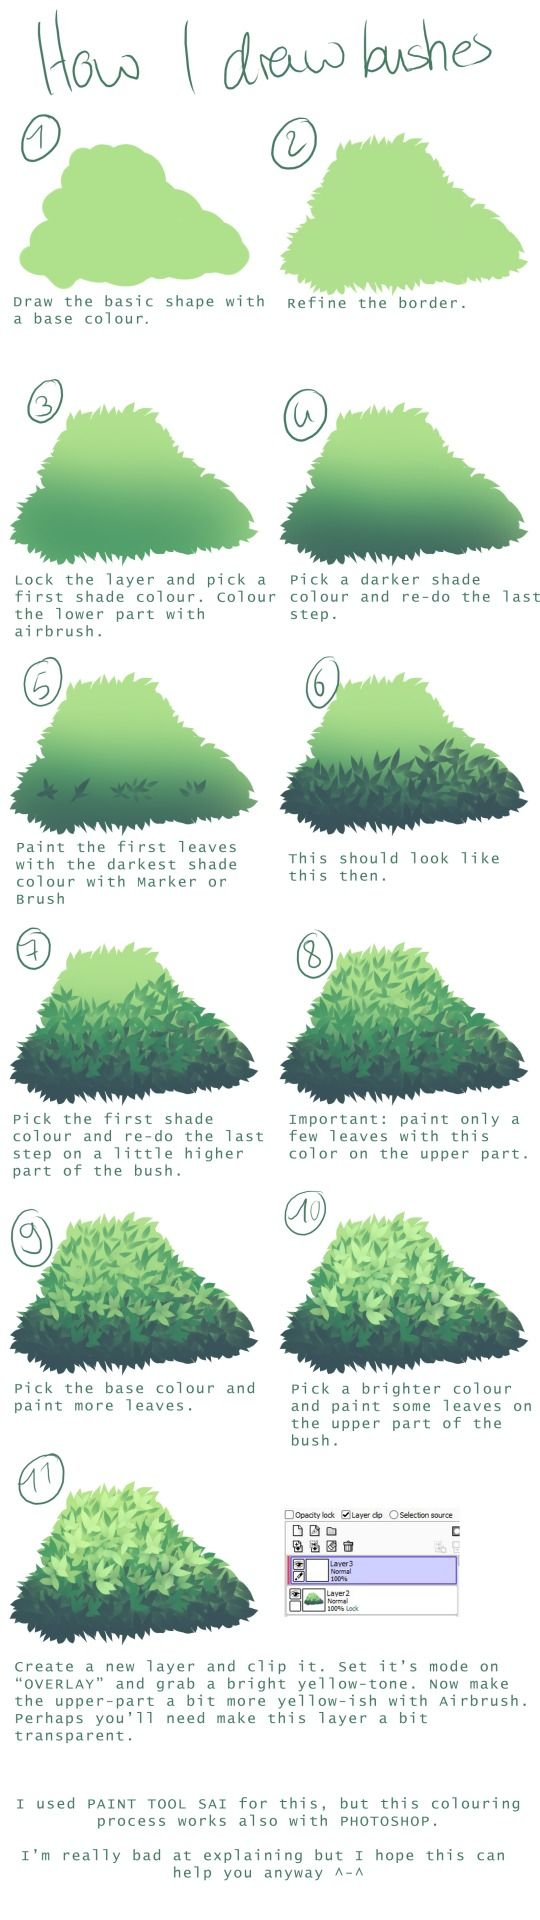 How I draw bushes Another requested tutorial. I normally use Sai for painting but this process should also work in Photoshop.